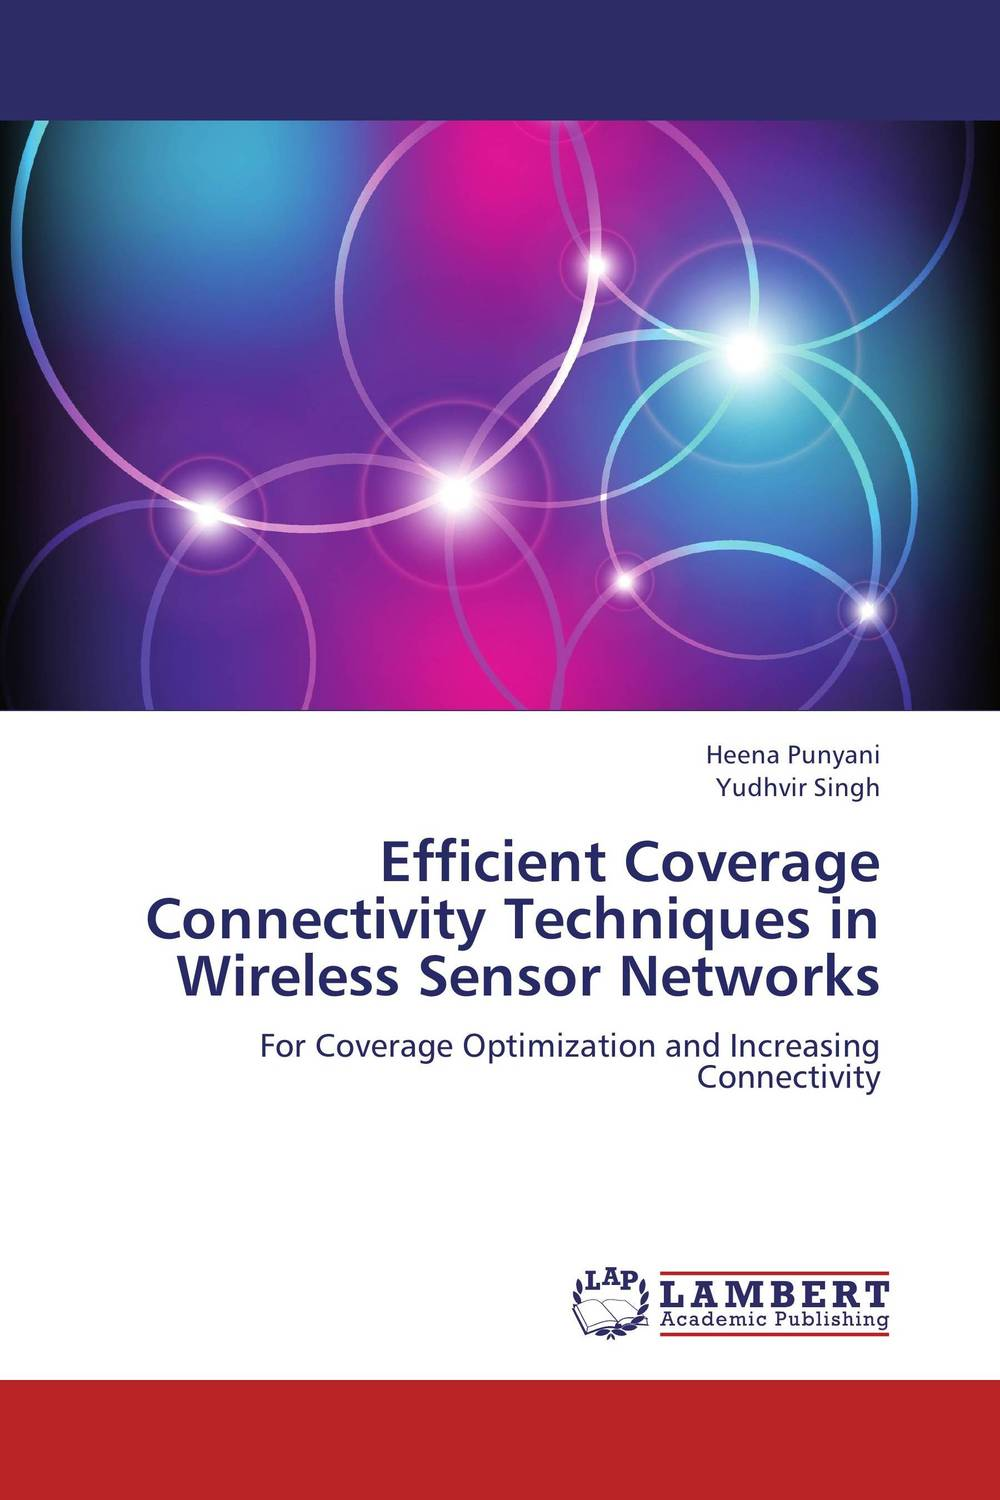 Efficient Coverage Connectivity Techniques in Wireless Sensor Networks